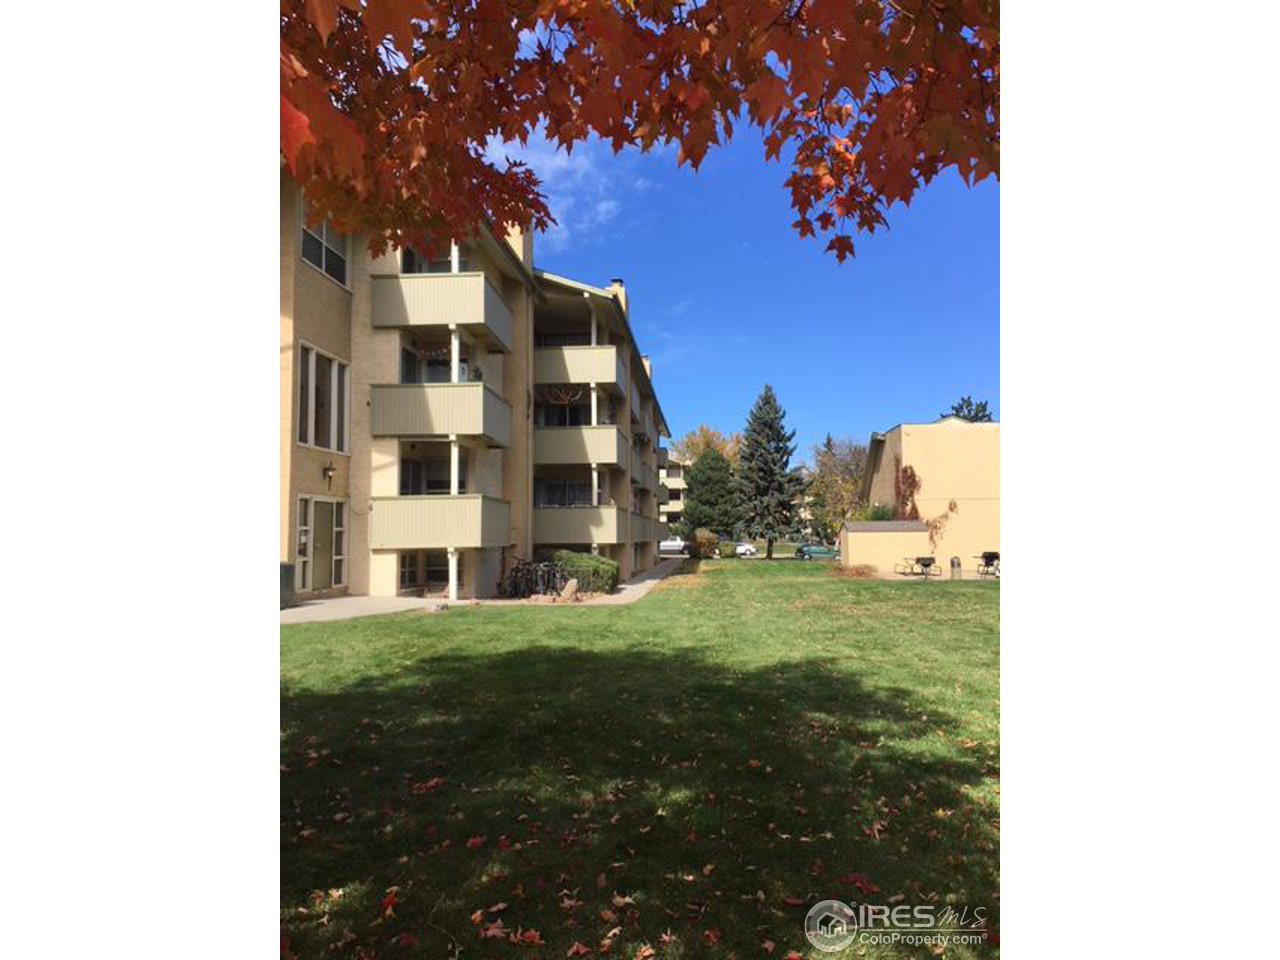 3030 Oneal Pkwy, Boulder CO 80301